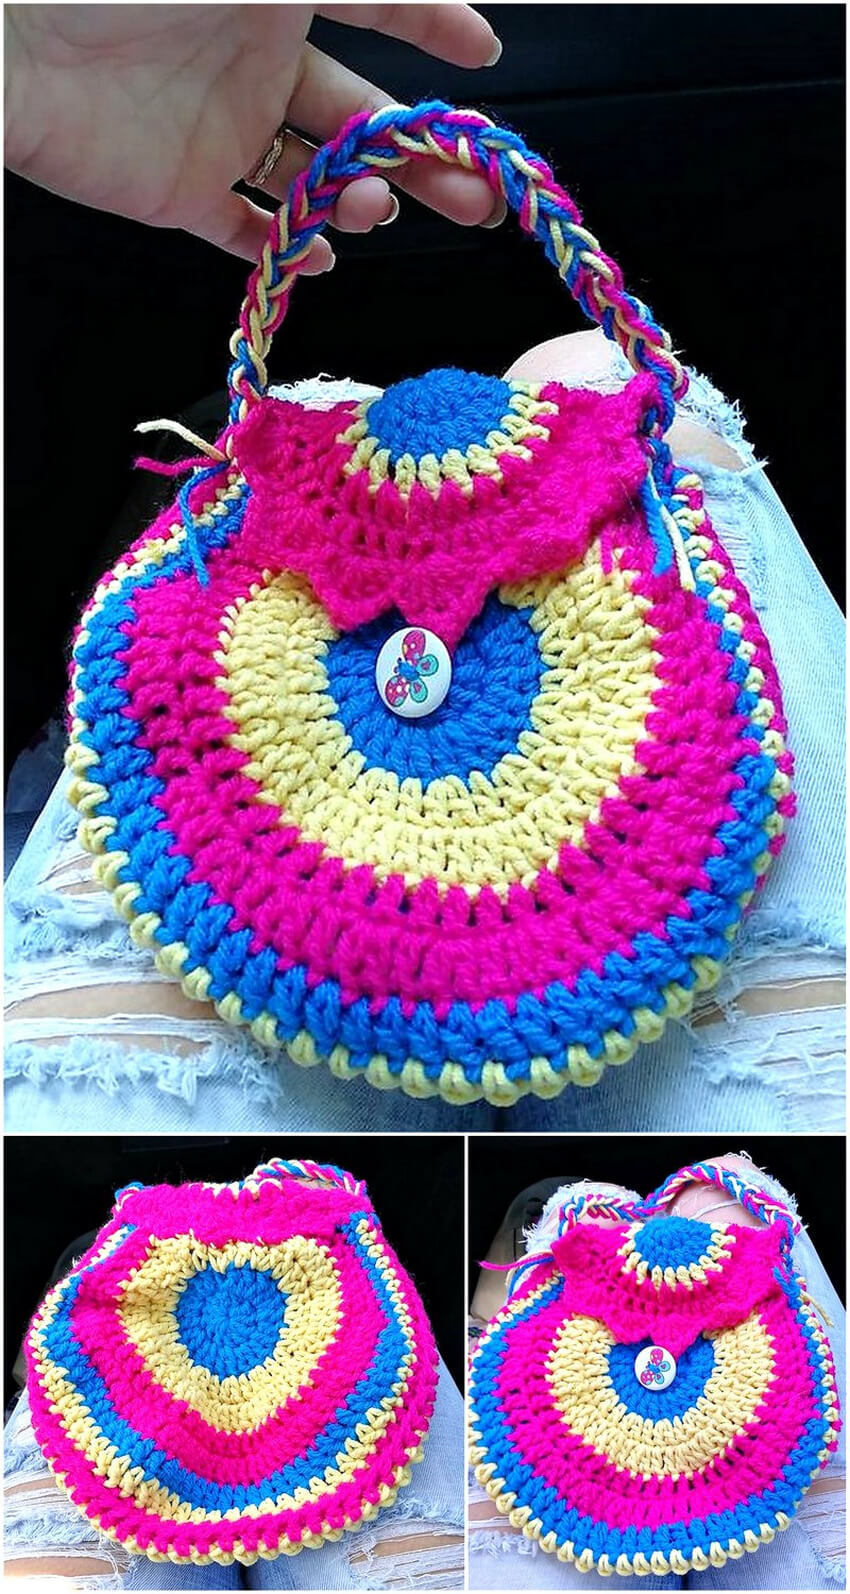 crocheted bag design ideas 14